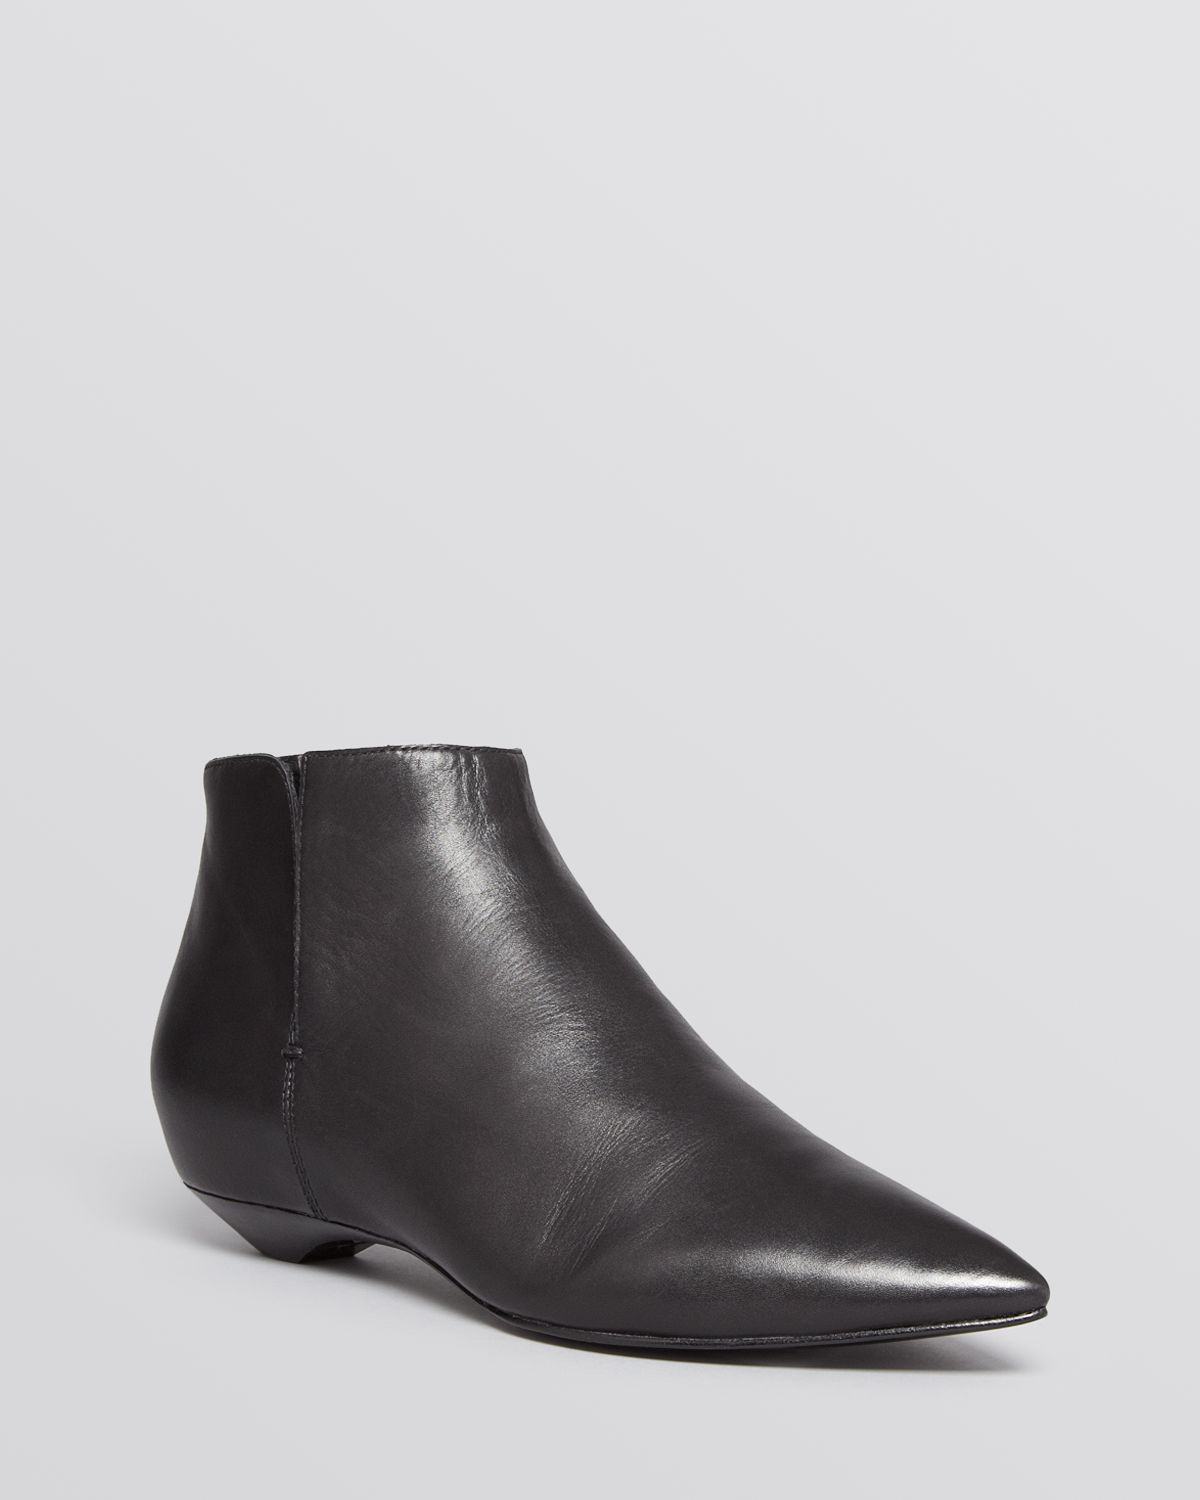 sigerson morrison pointed toe flat booties gabrielle in